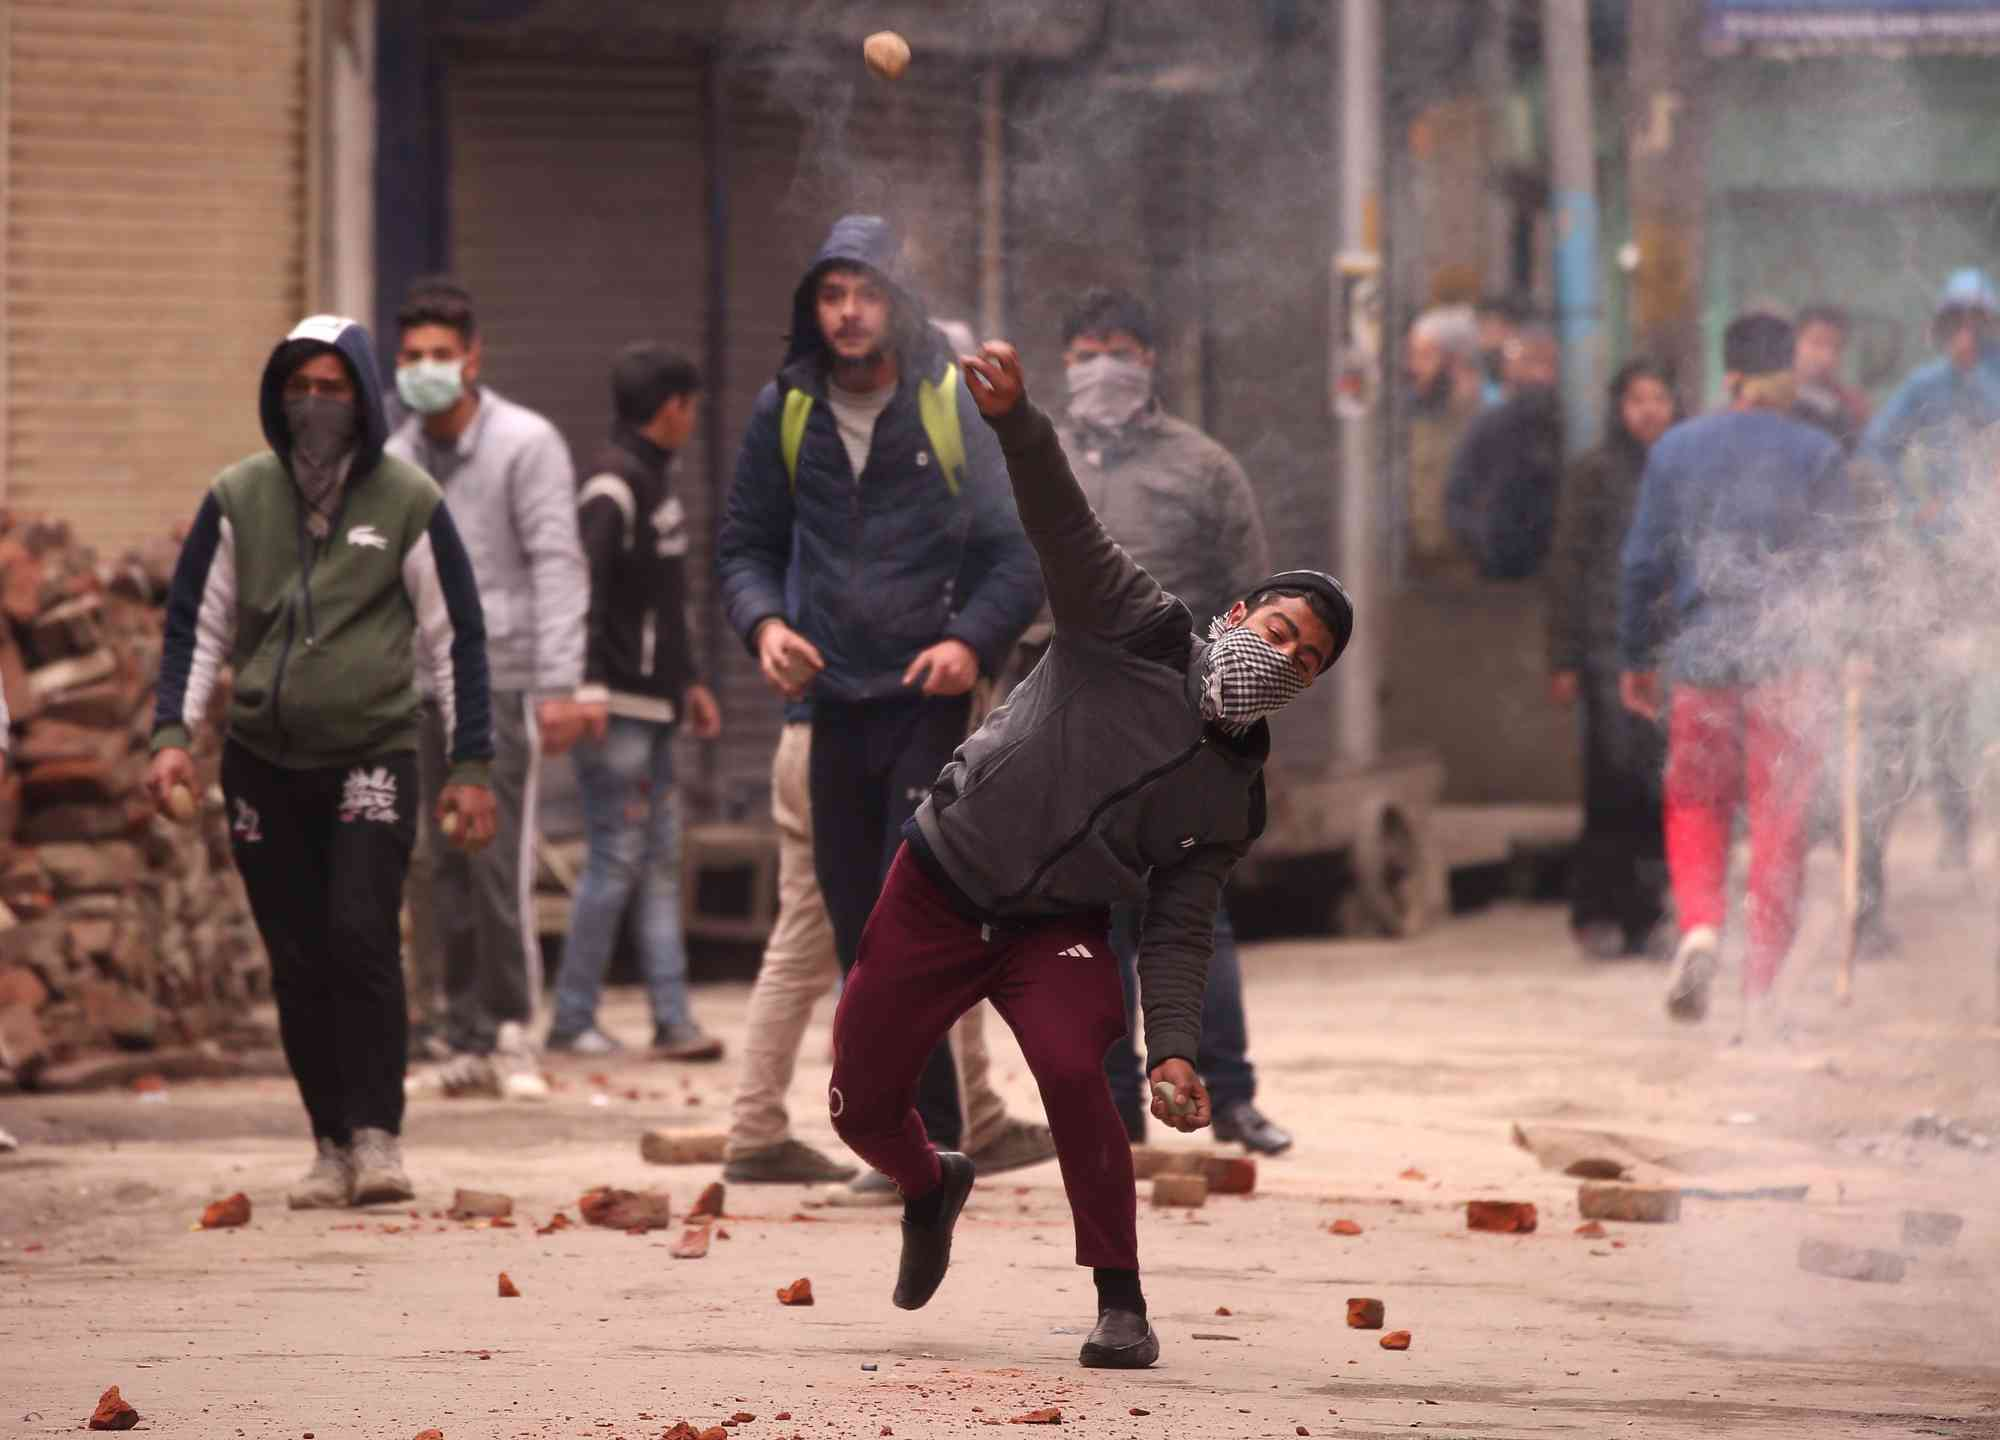 A demonstrator in Srinagar throws a piece of brick towards the police (unseen) during a protest after the National Investigation Agency carried out a raid at the residence of Yasin Malik, chairman of the separatist Jammu Kashmir Liberation Front, on February 26, 2019. (Photo credit: Danish Ismail/Reuters)